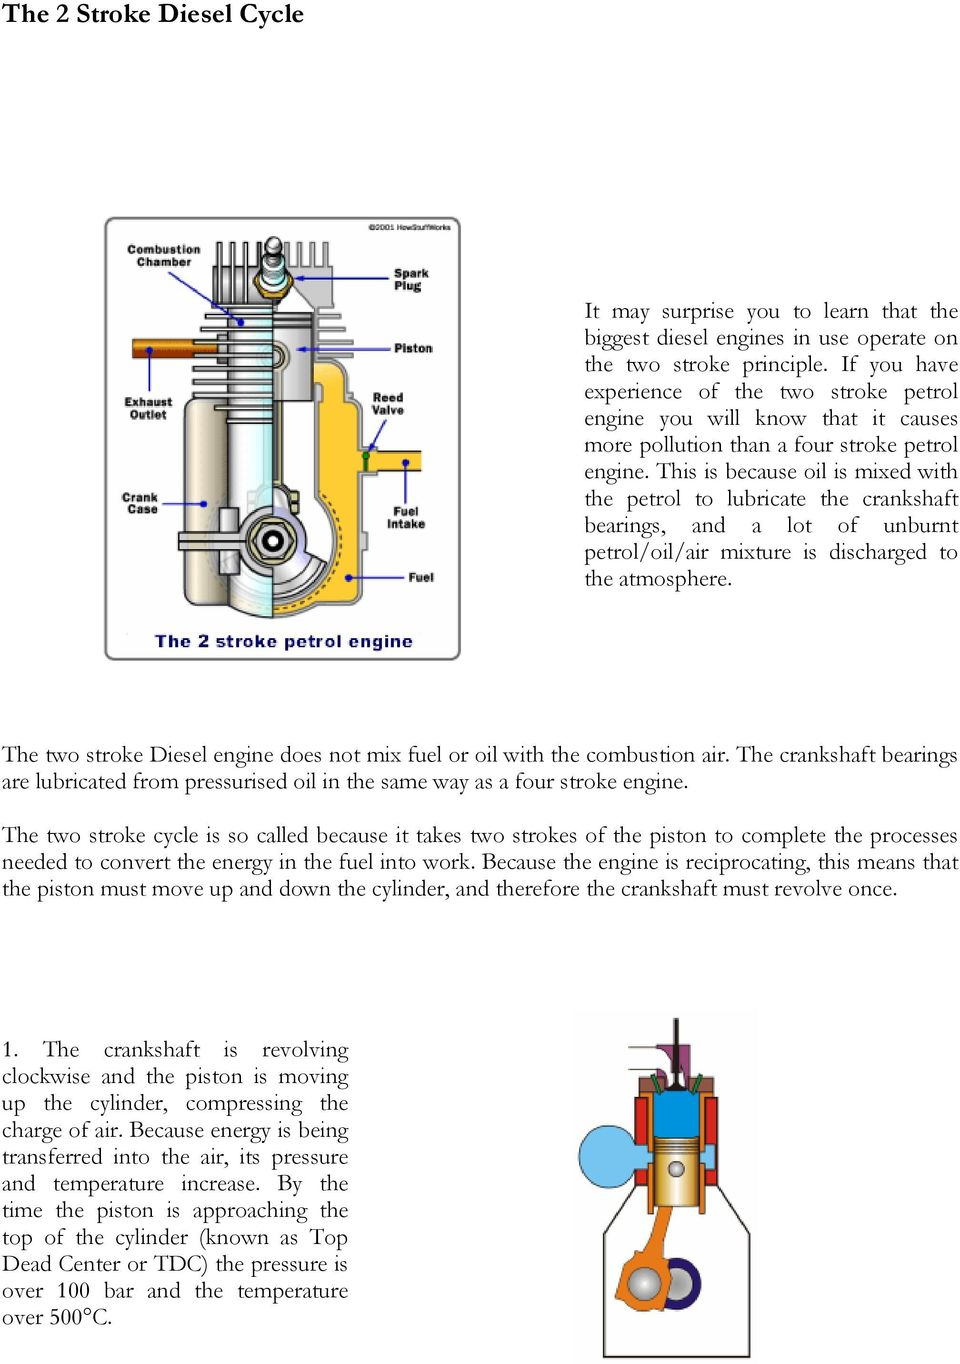 The Learning Resource For Marine Engineers Pdf Two Stroke Engine Diagram This Is Because Oil Mixed With Petrol To Lubricate Crankshaft Bearings And